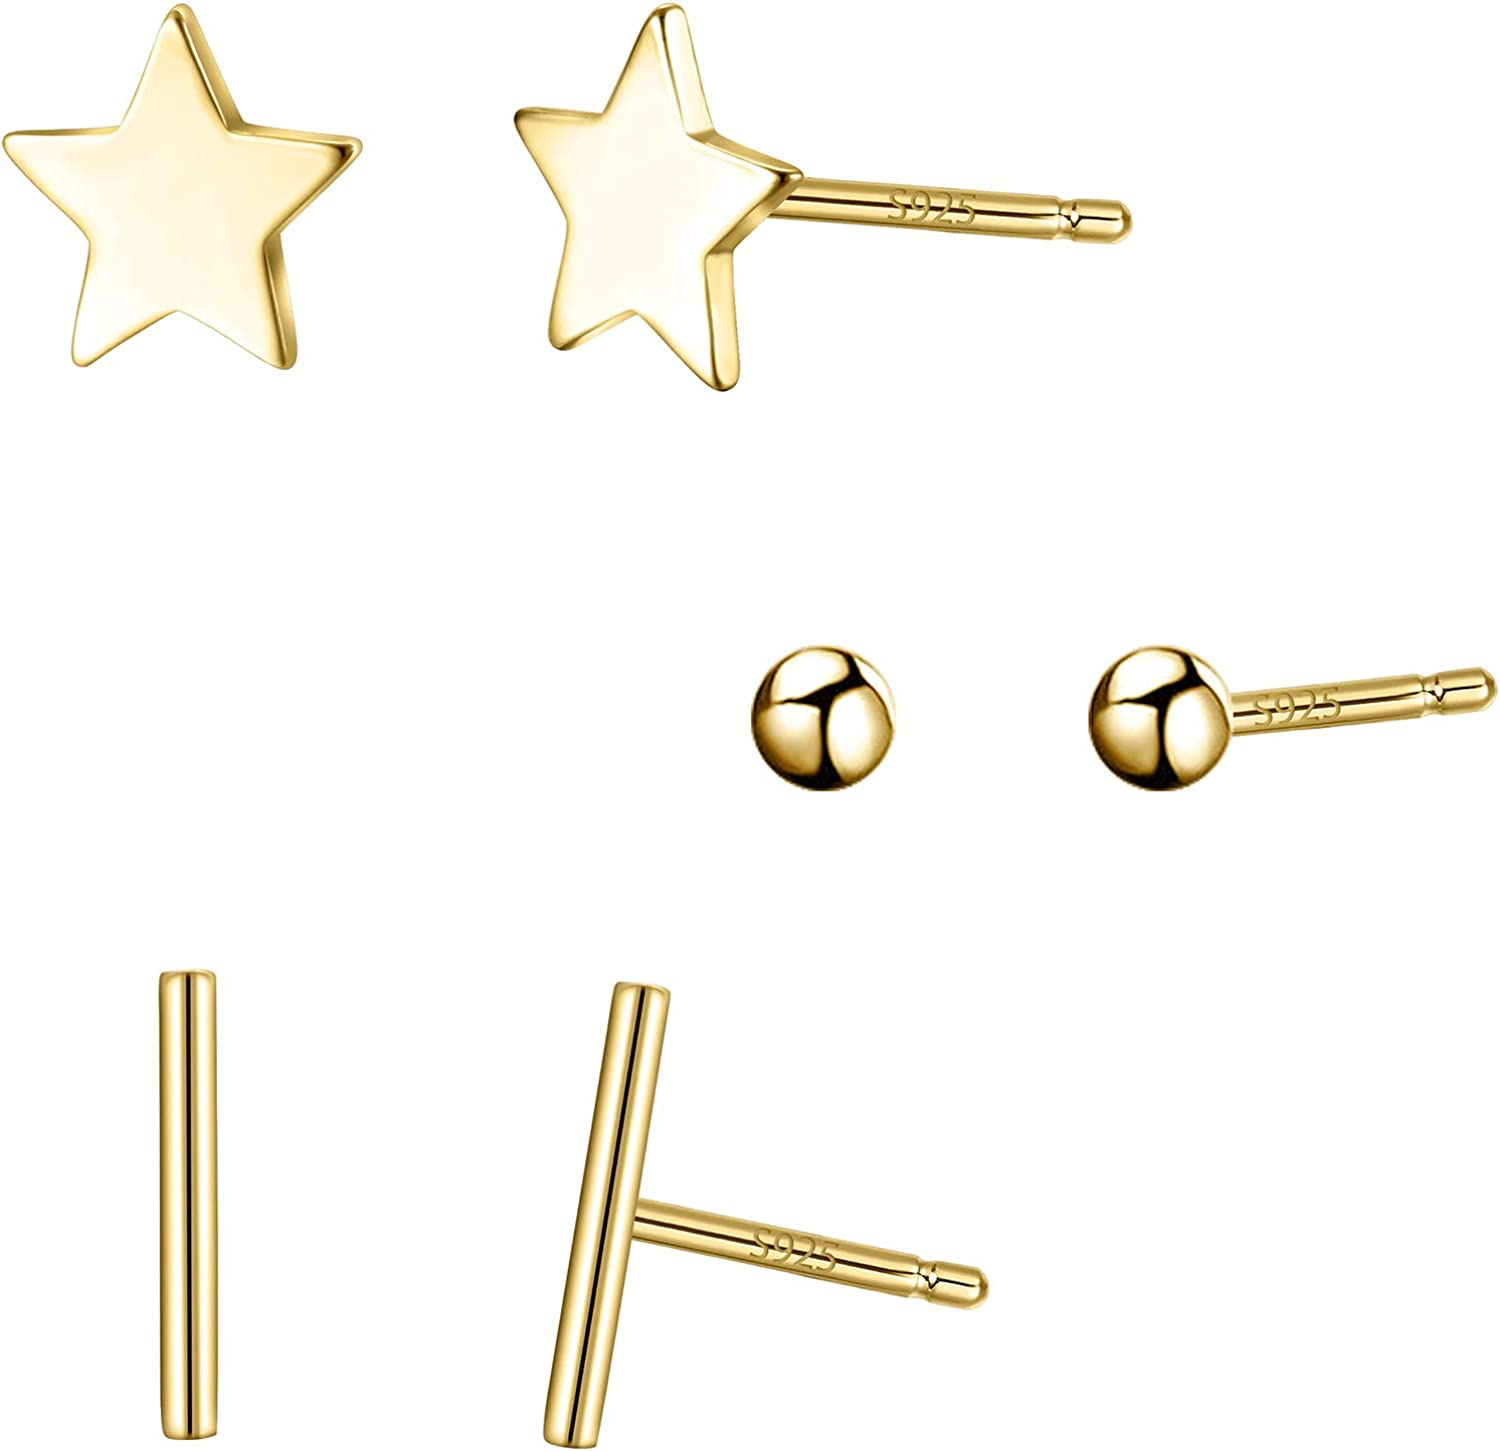 Elequeen 925 Sterling Silver 3 Sets Star Rectangle Ball Tiny Studs Earrings For Women Girls Gold Clothing Amazon Com